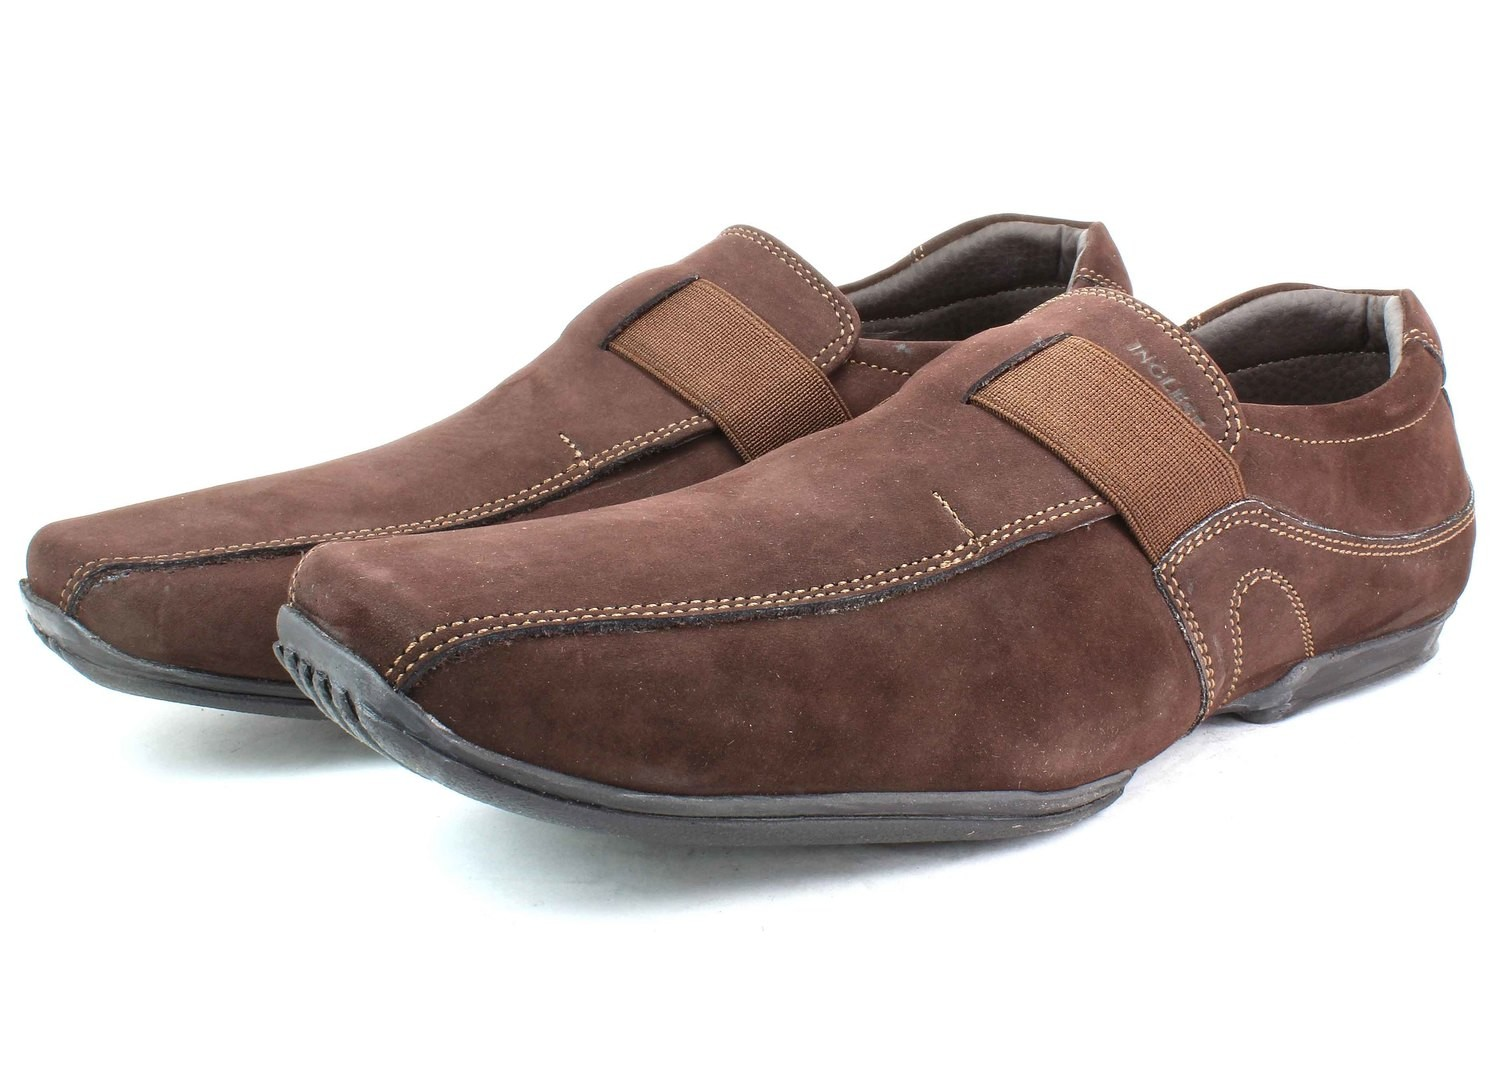 Mens SHOES Genuine Nubuck Leather Brown - SUGGESTED RETAIL PRICE $45.00 - WHOLESALE PRICE $17